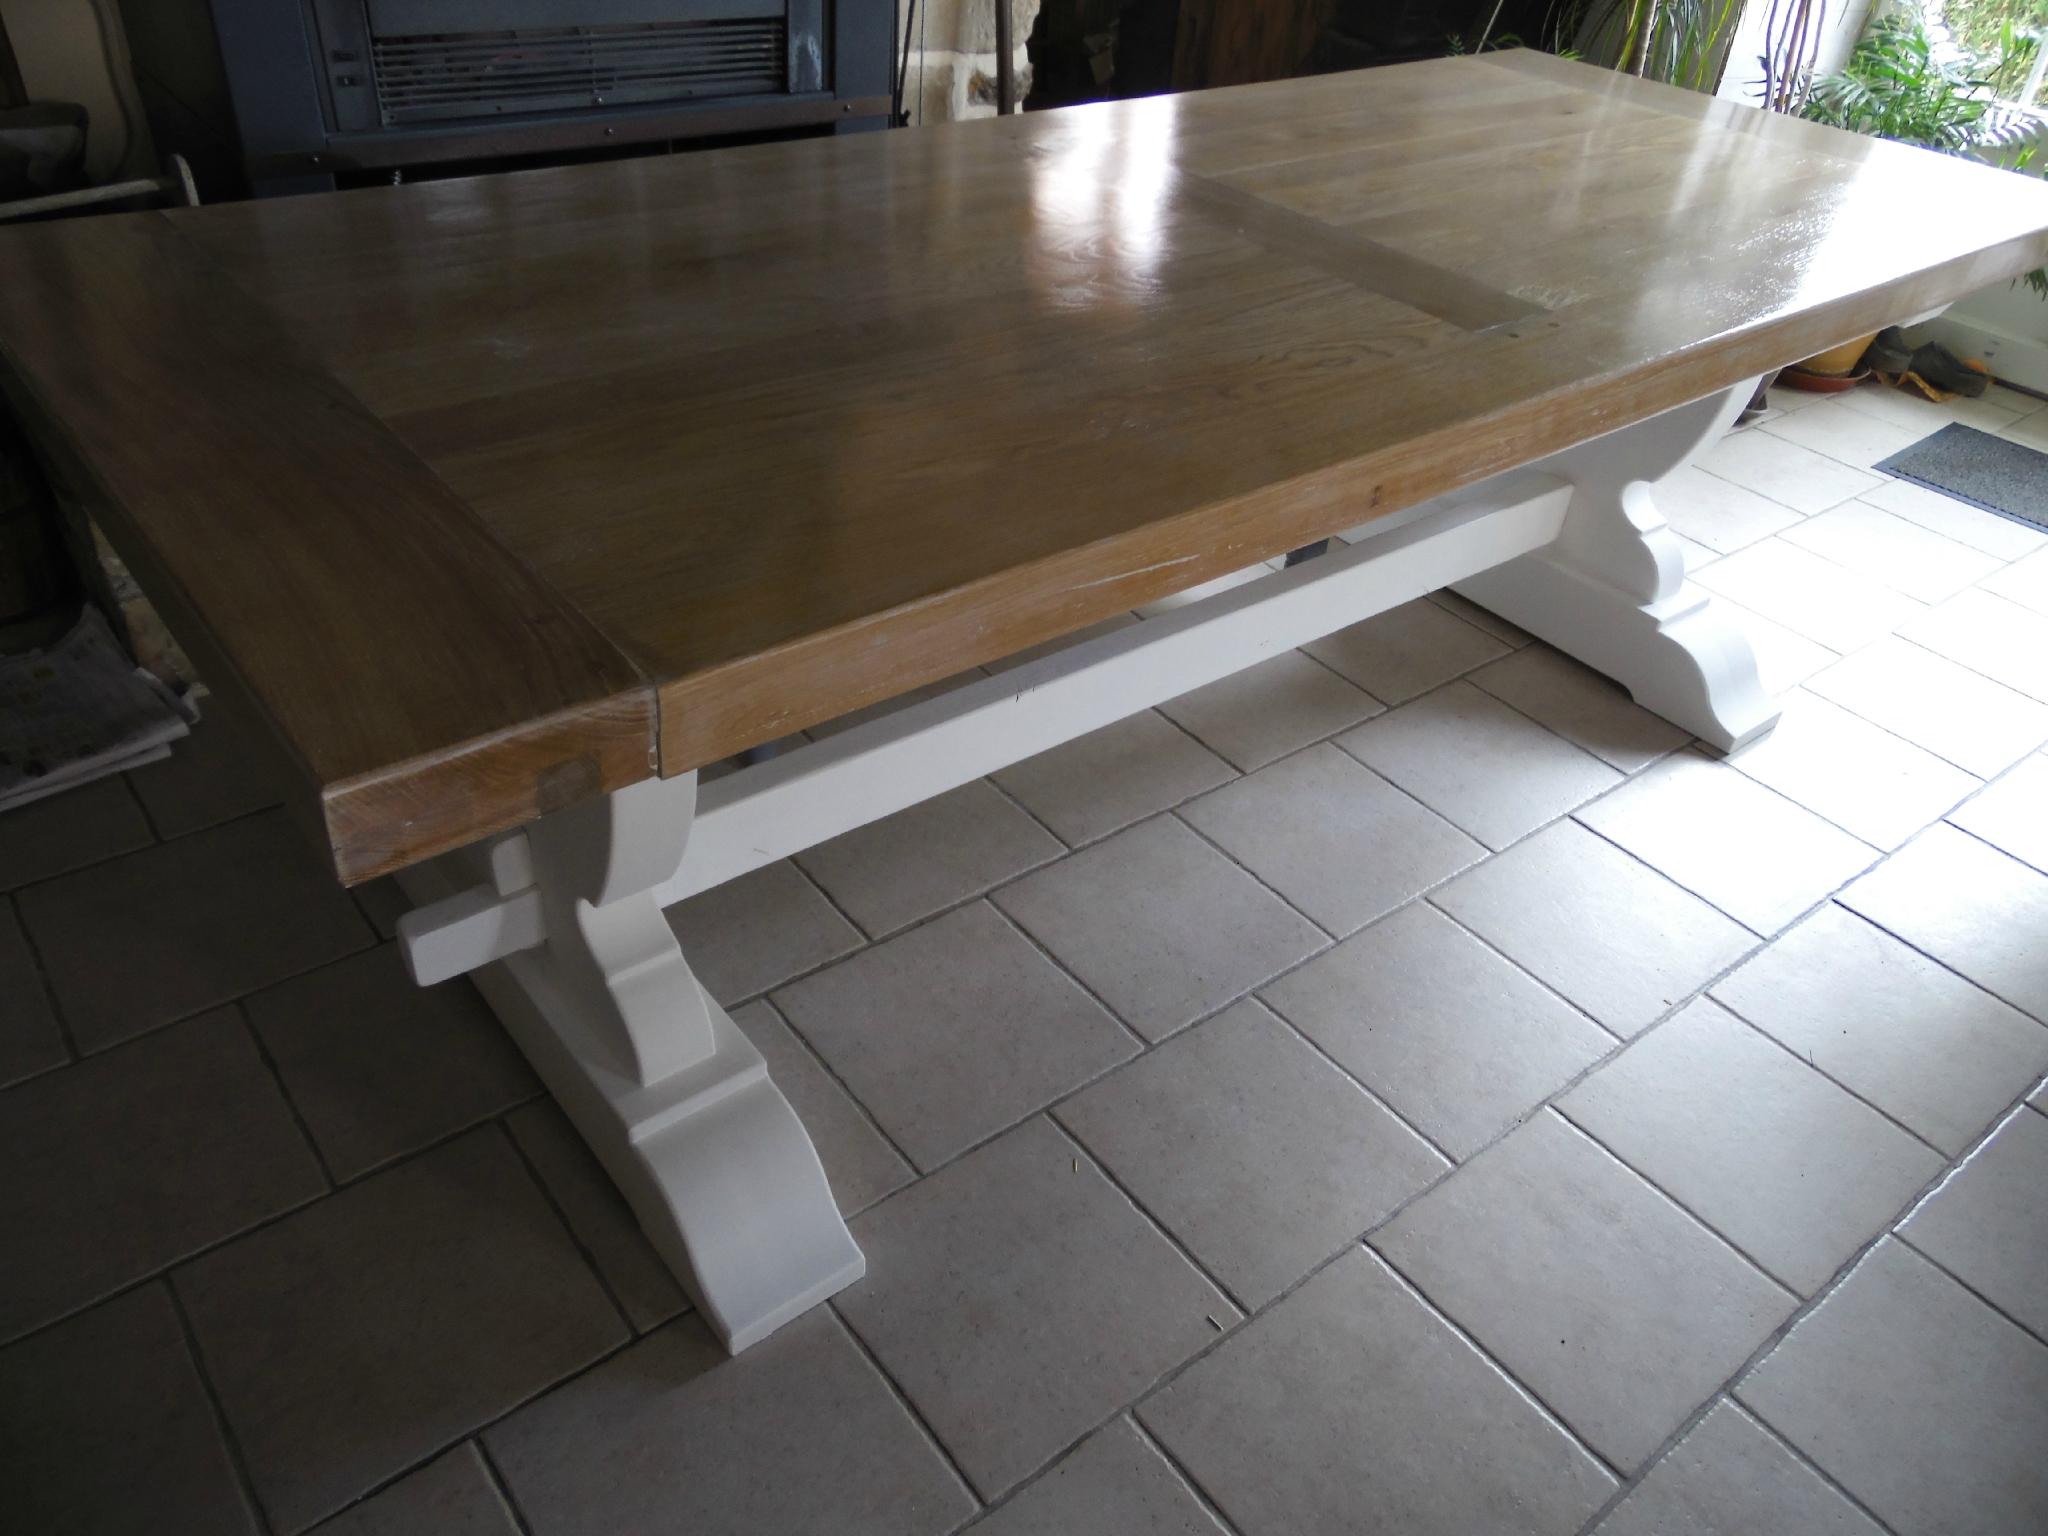 Ancienne table de ferme la d co de g g for Table ancienne de ferme